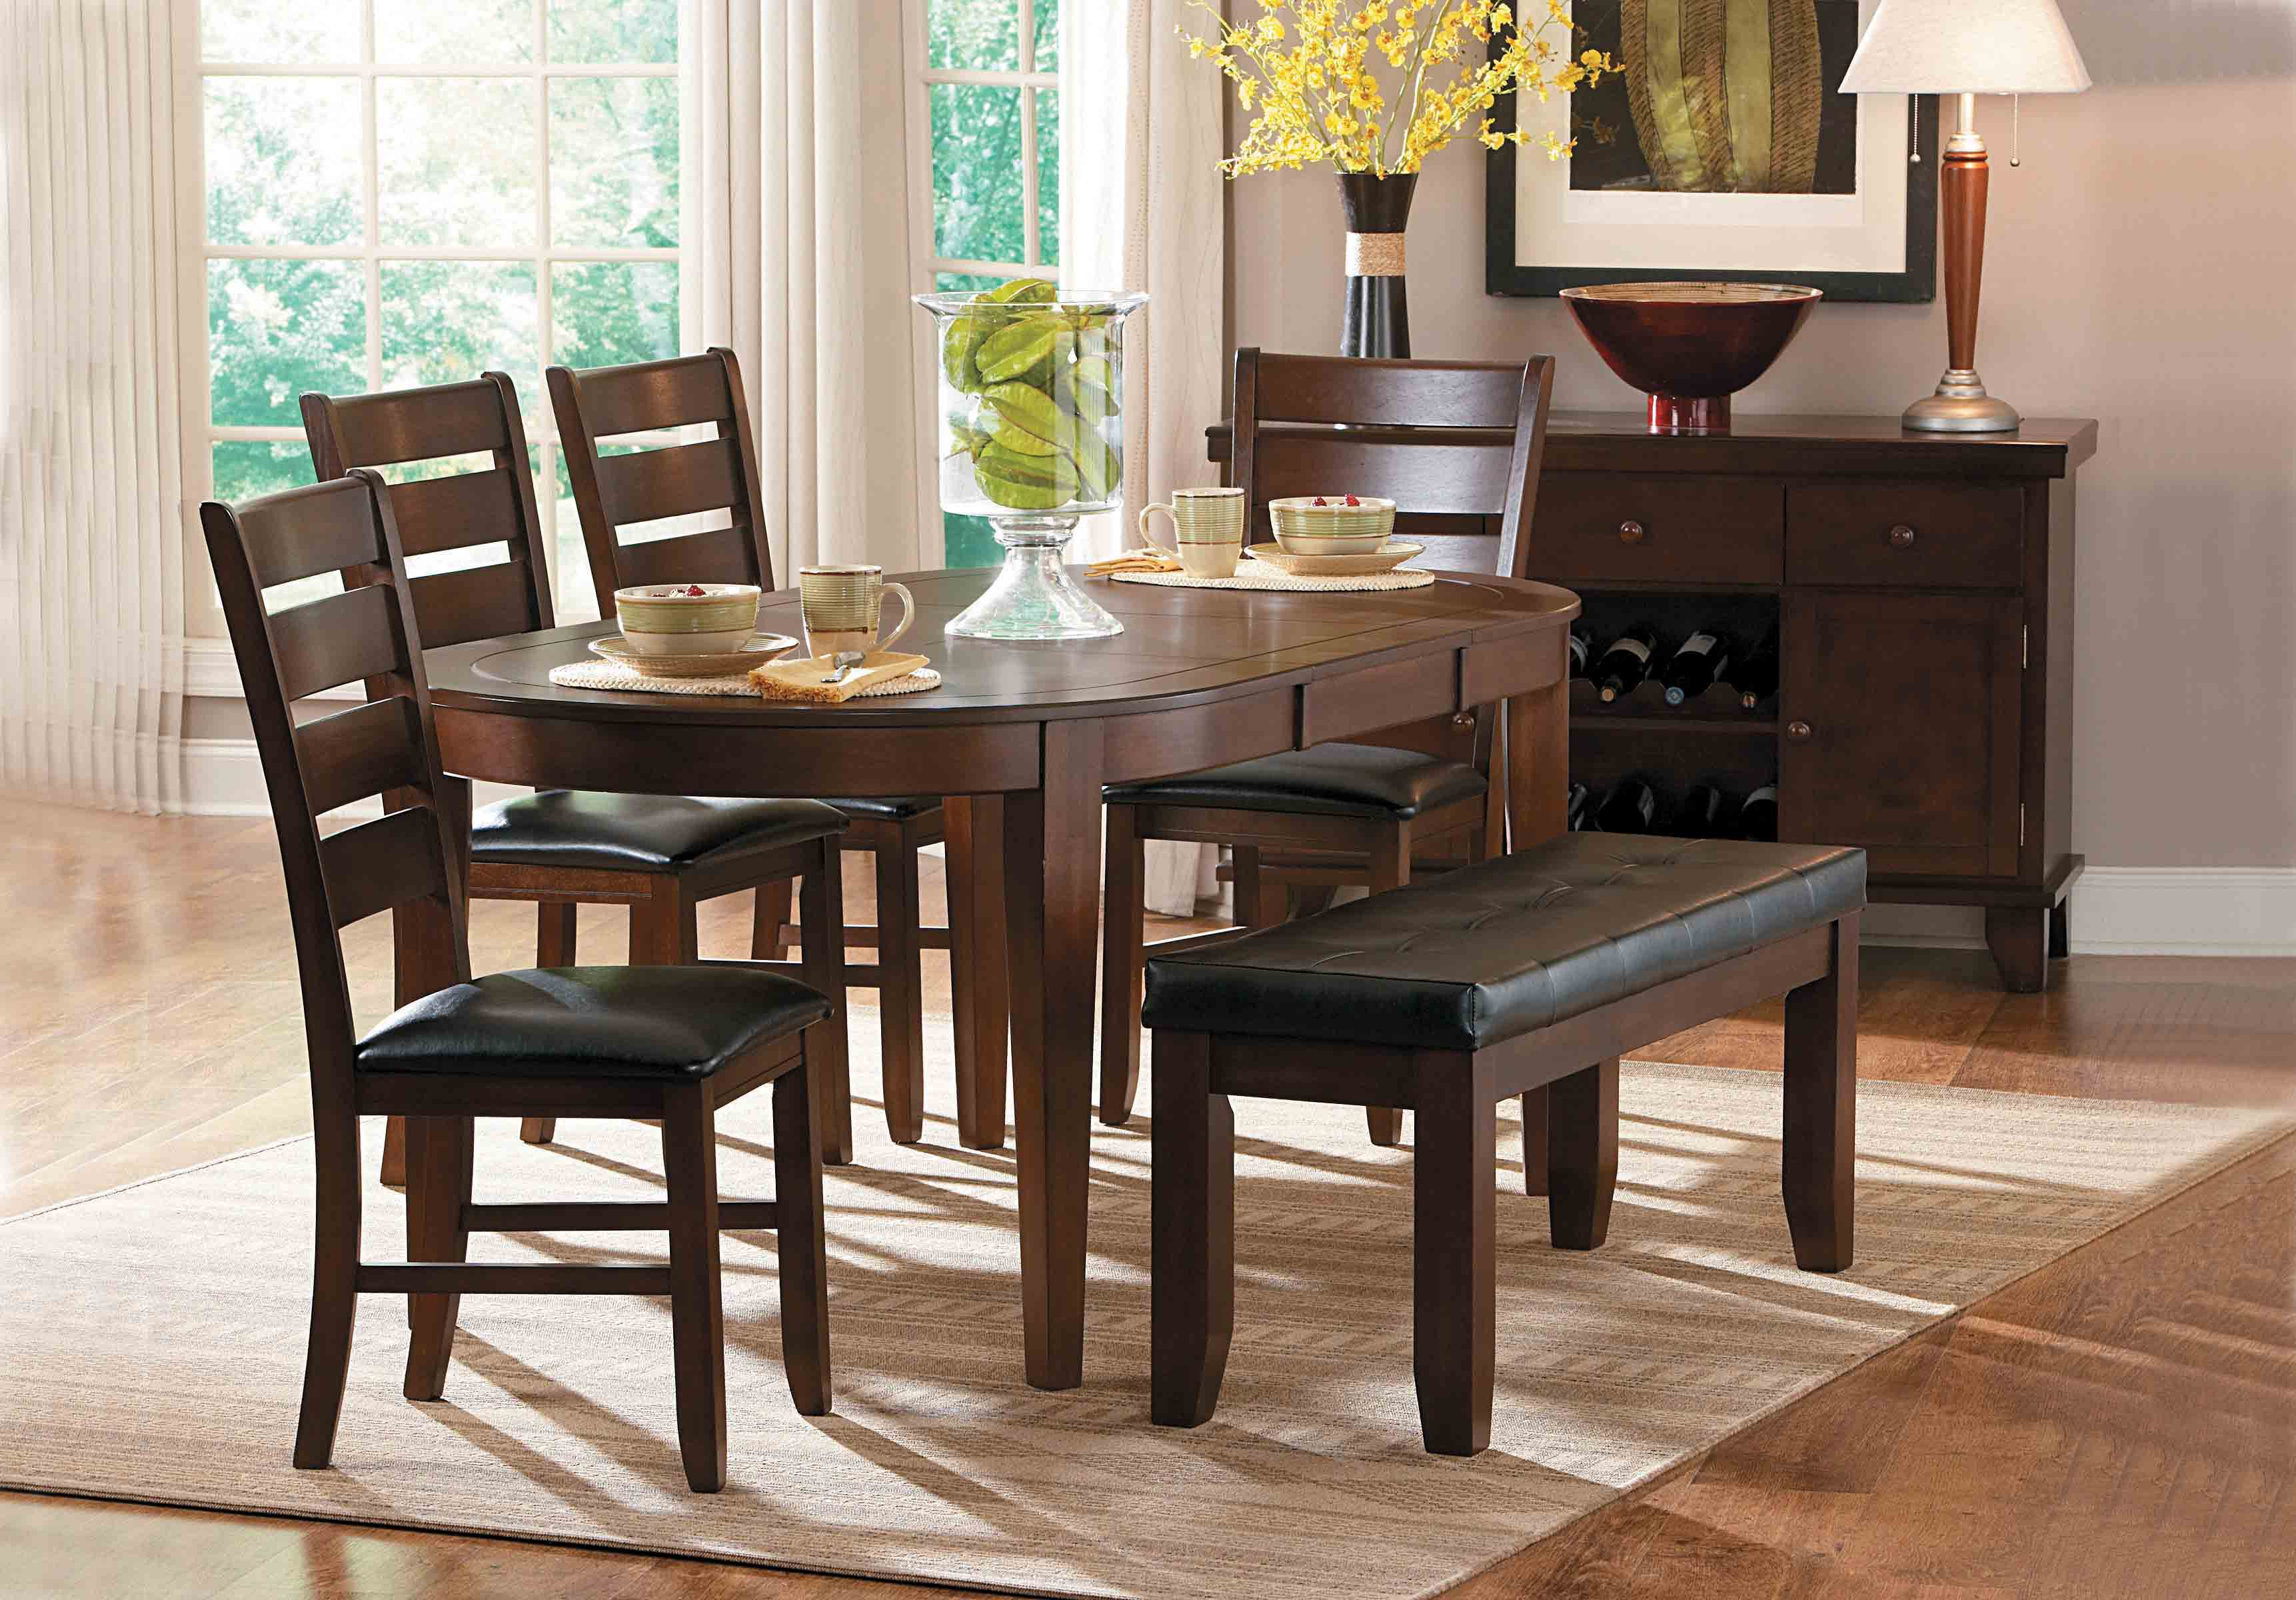 Home Elegance Ameillia Oak Brown Oval Dining Table The